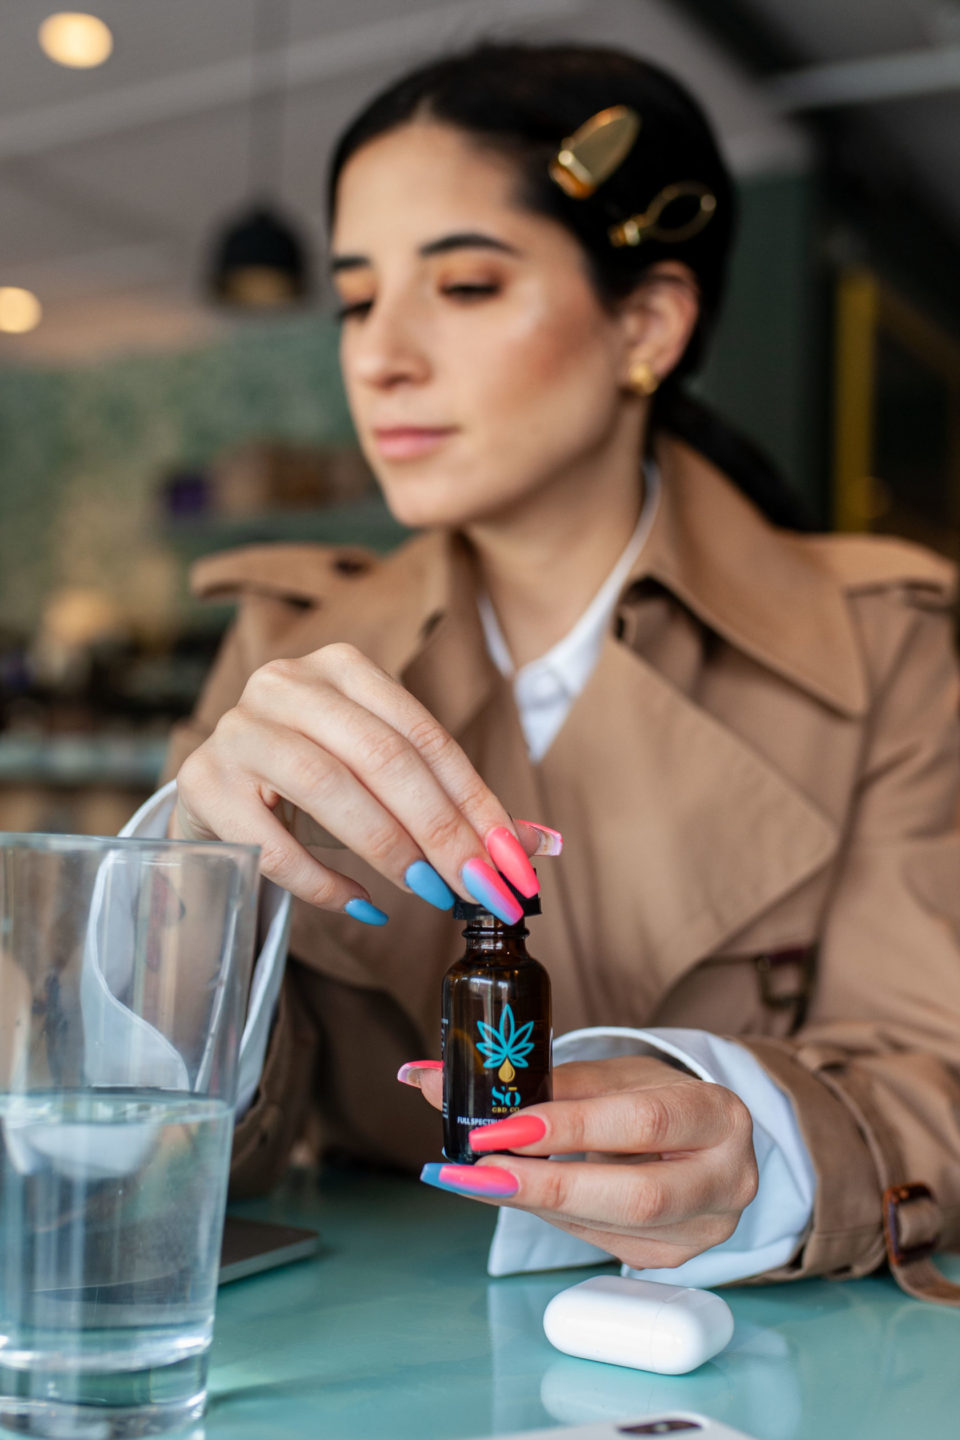 7 Conditions CBD May Help Relieve